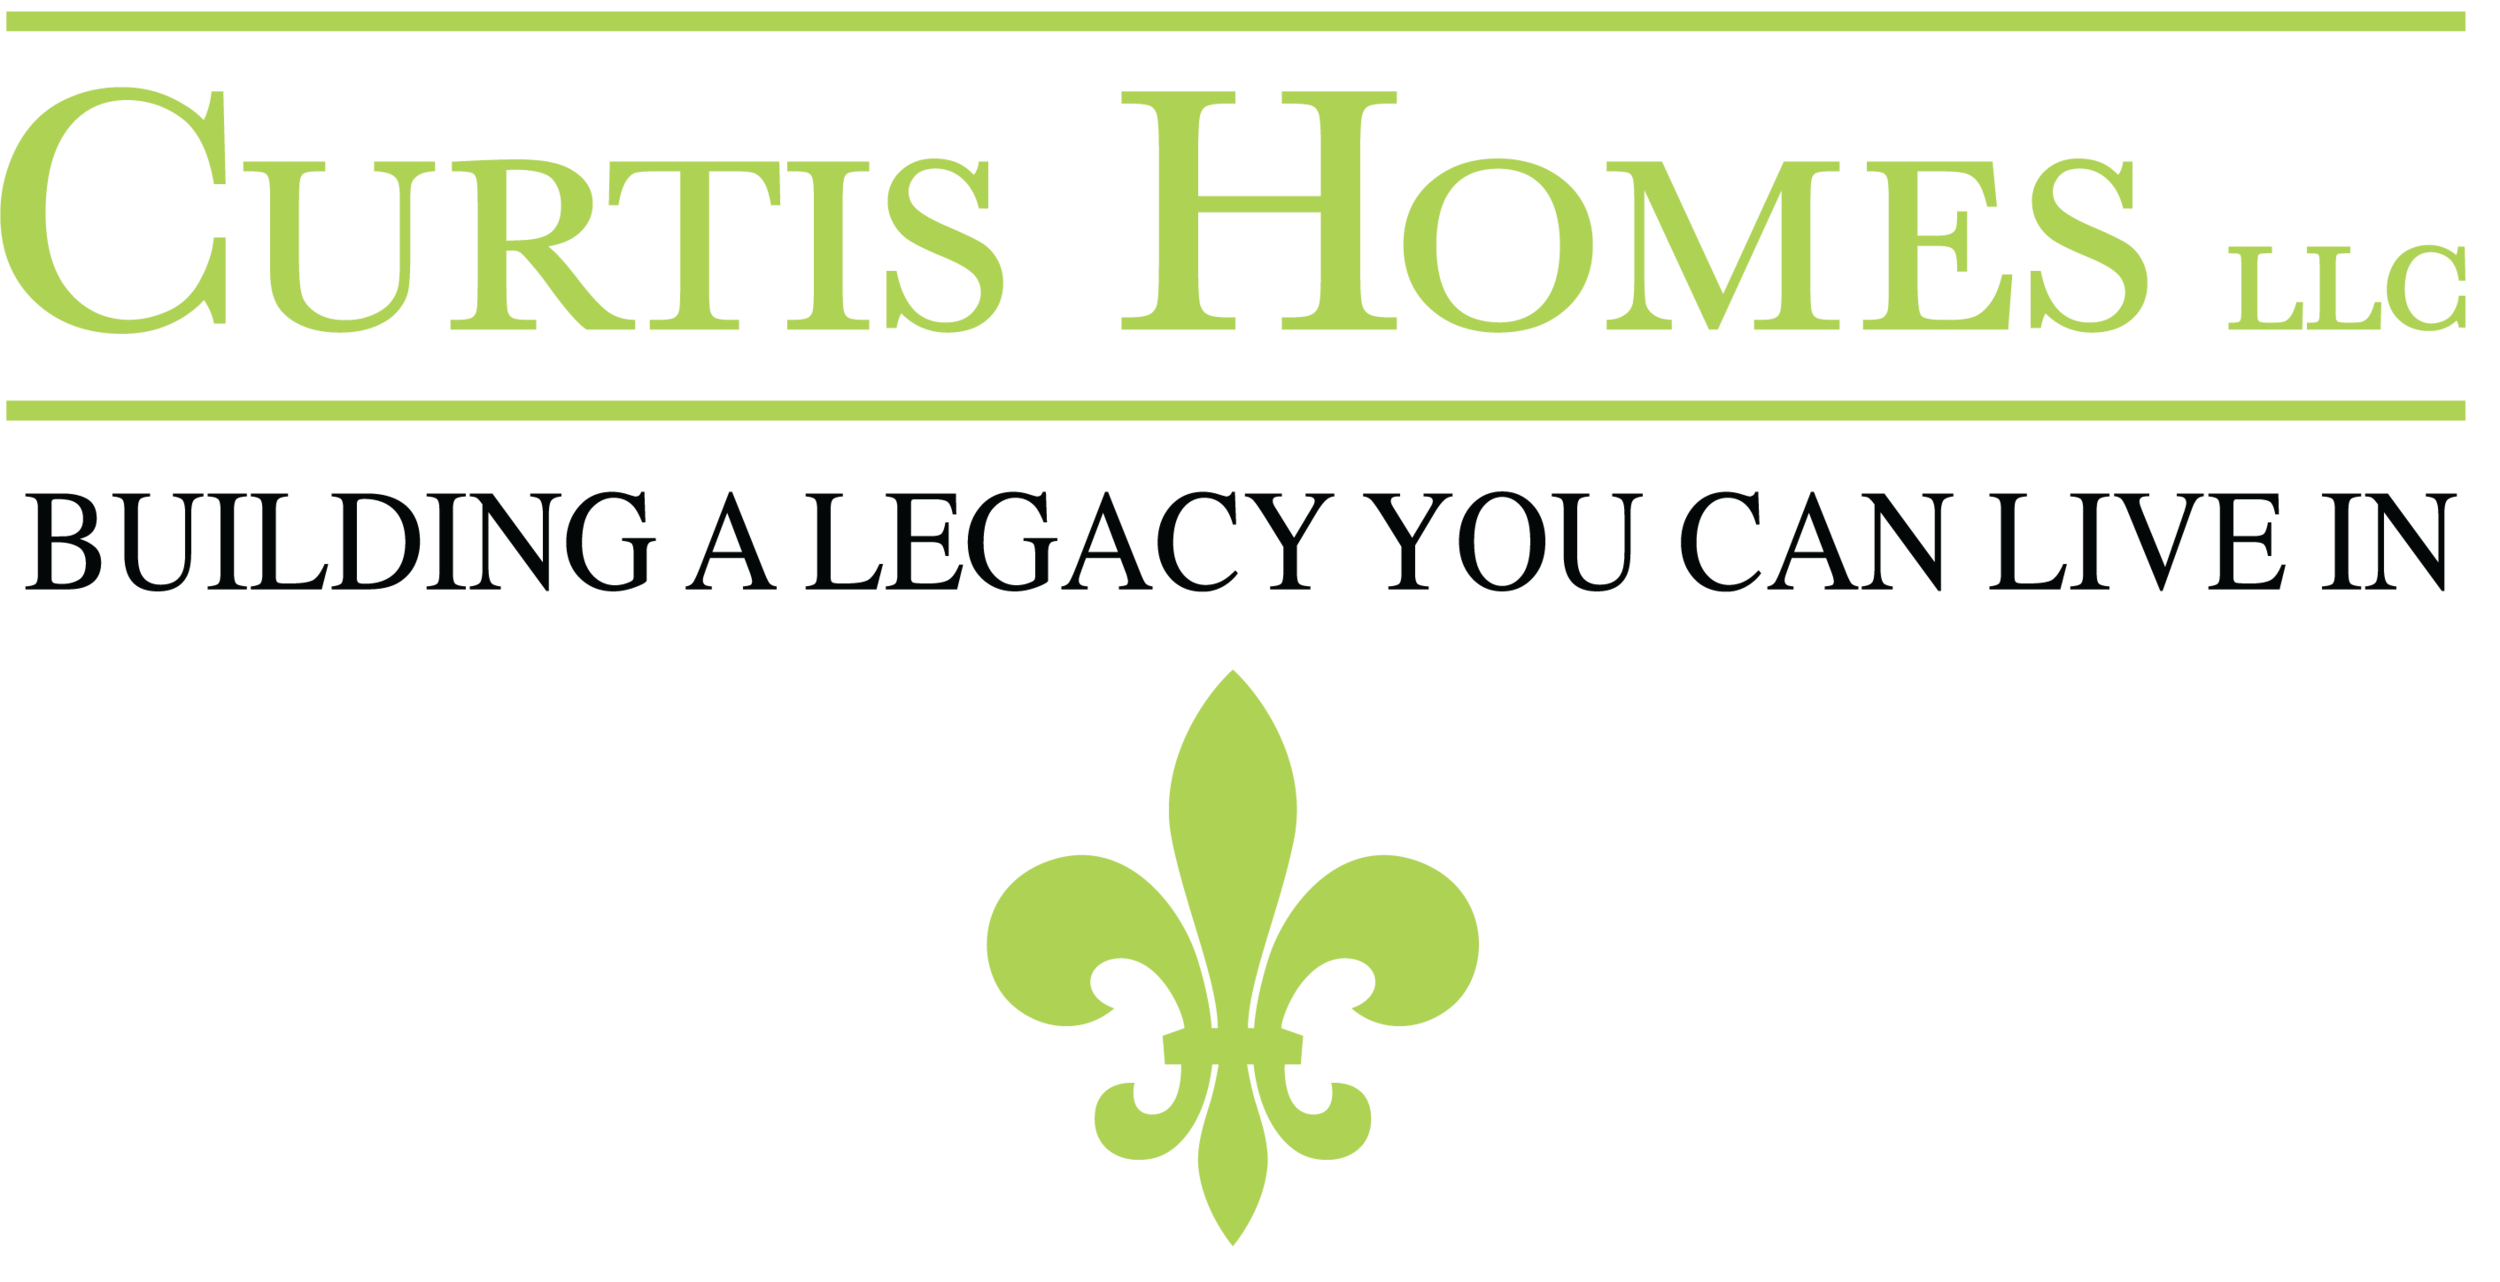 CurtisHomes.png